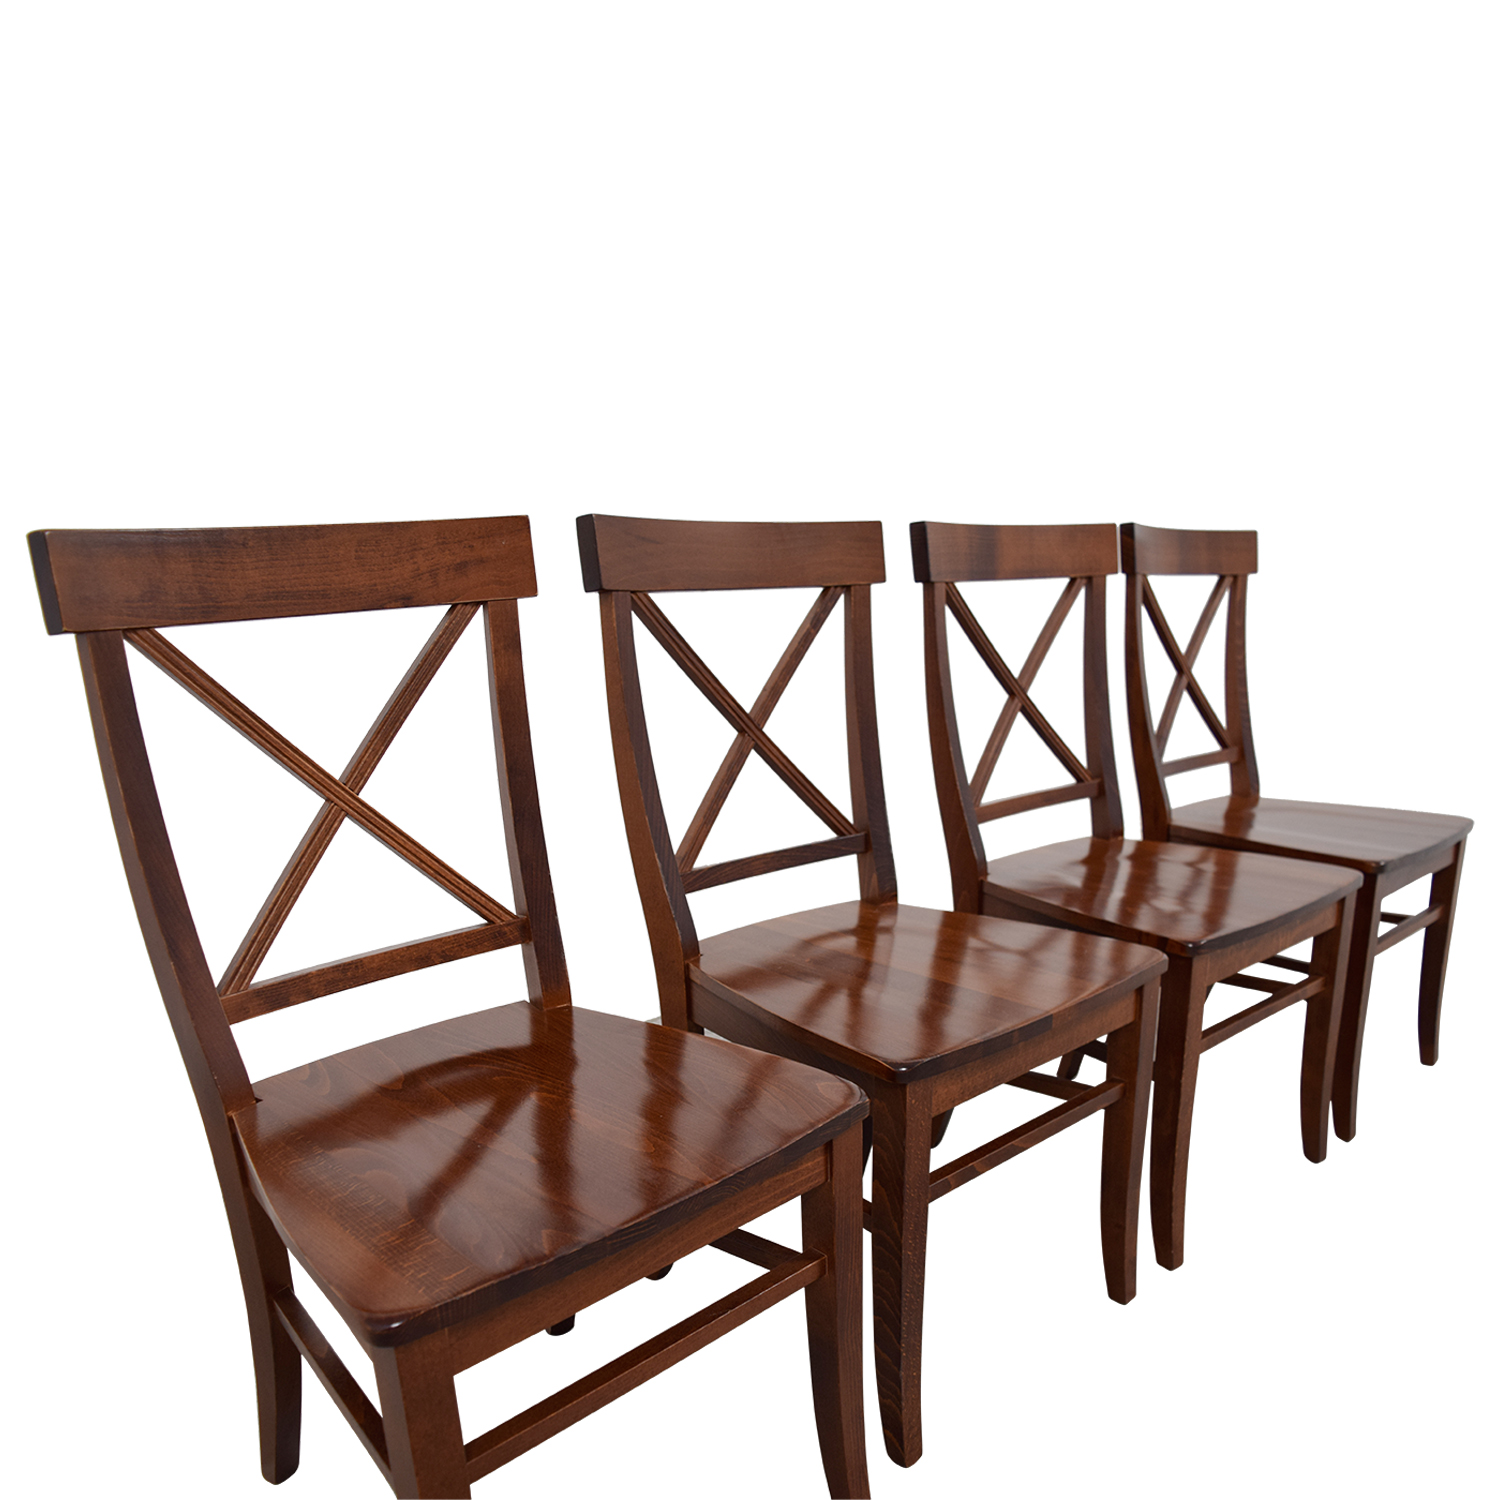 aaron chairs pottery barn set of pottery barn stefano dining chairs ebth keaton extending. Black Bedroom Furniture Sets. Home Design Ideas